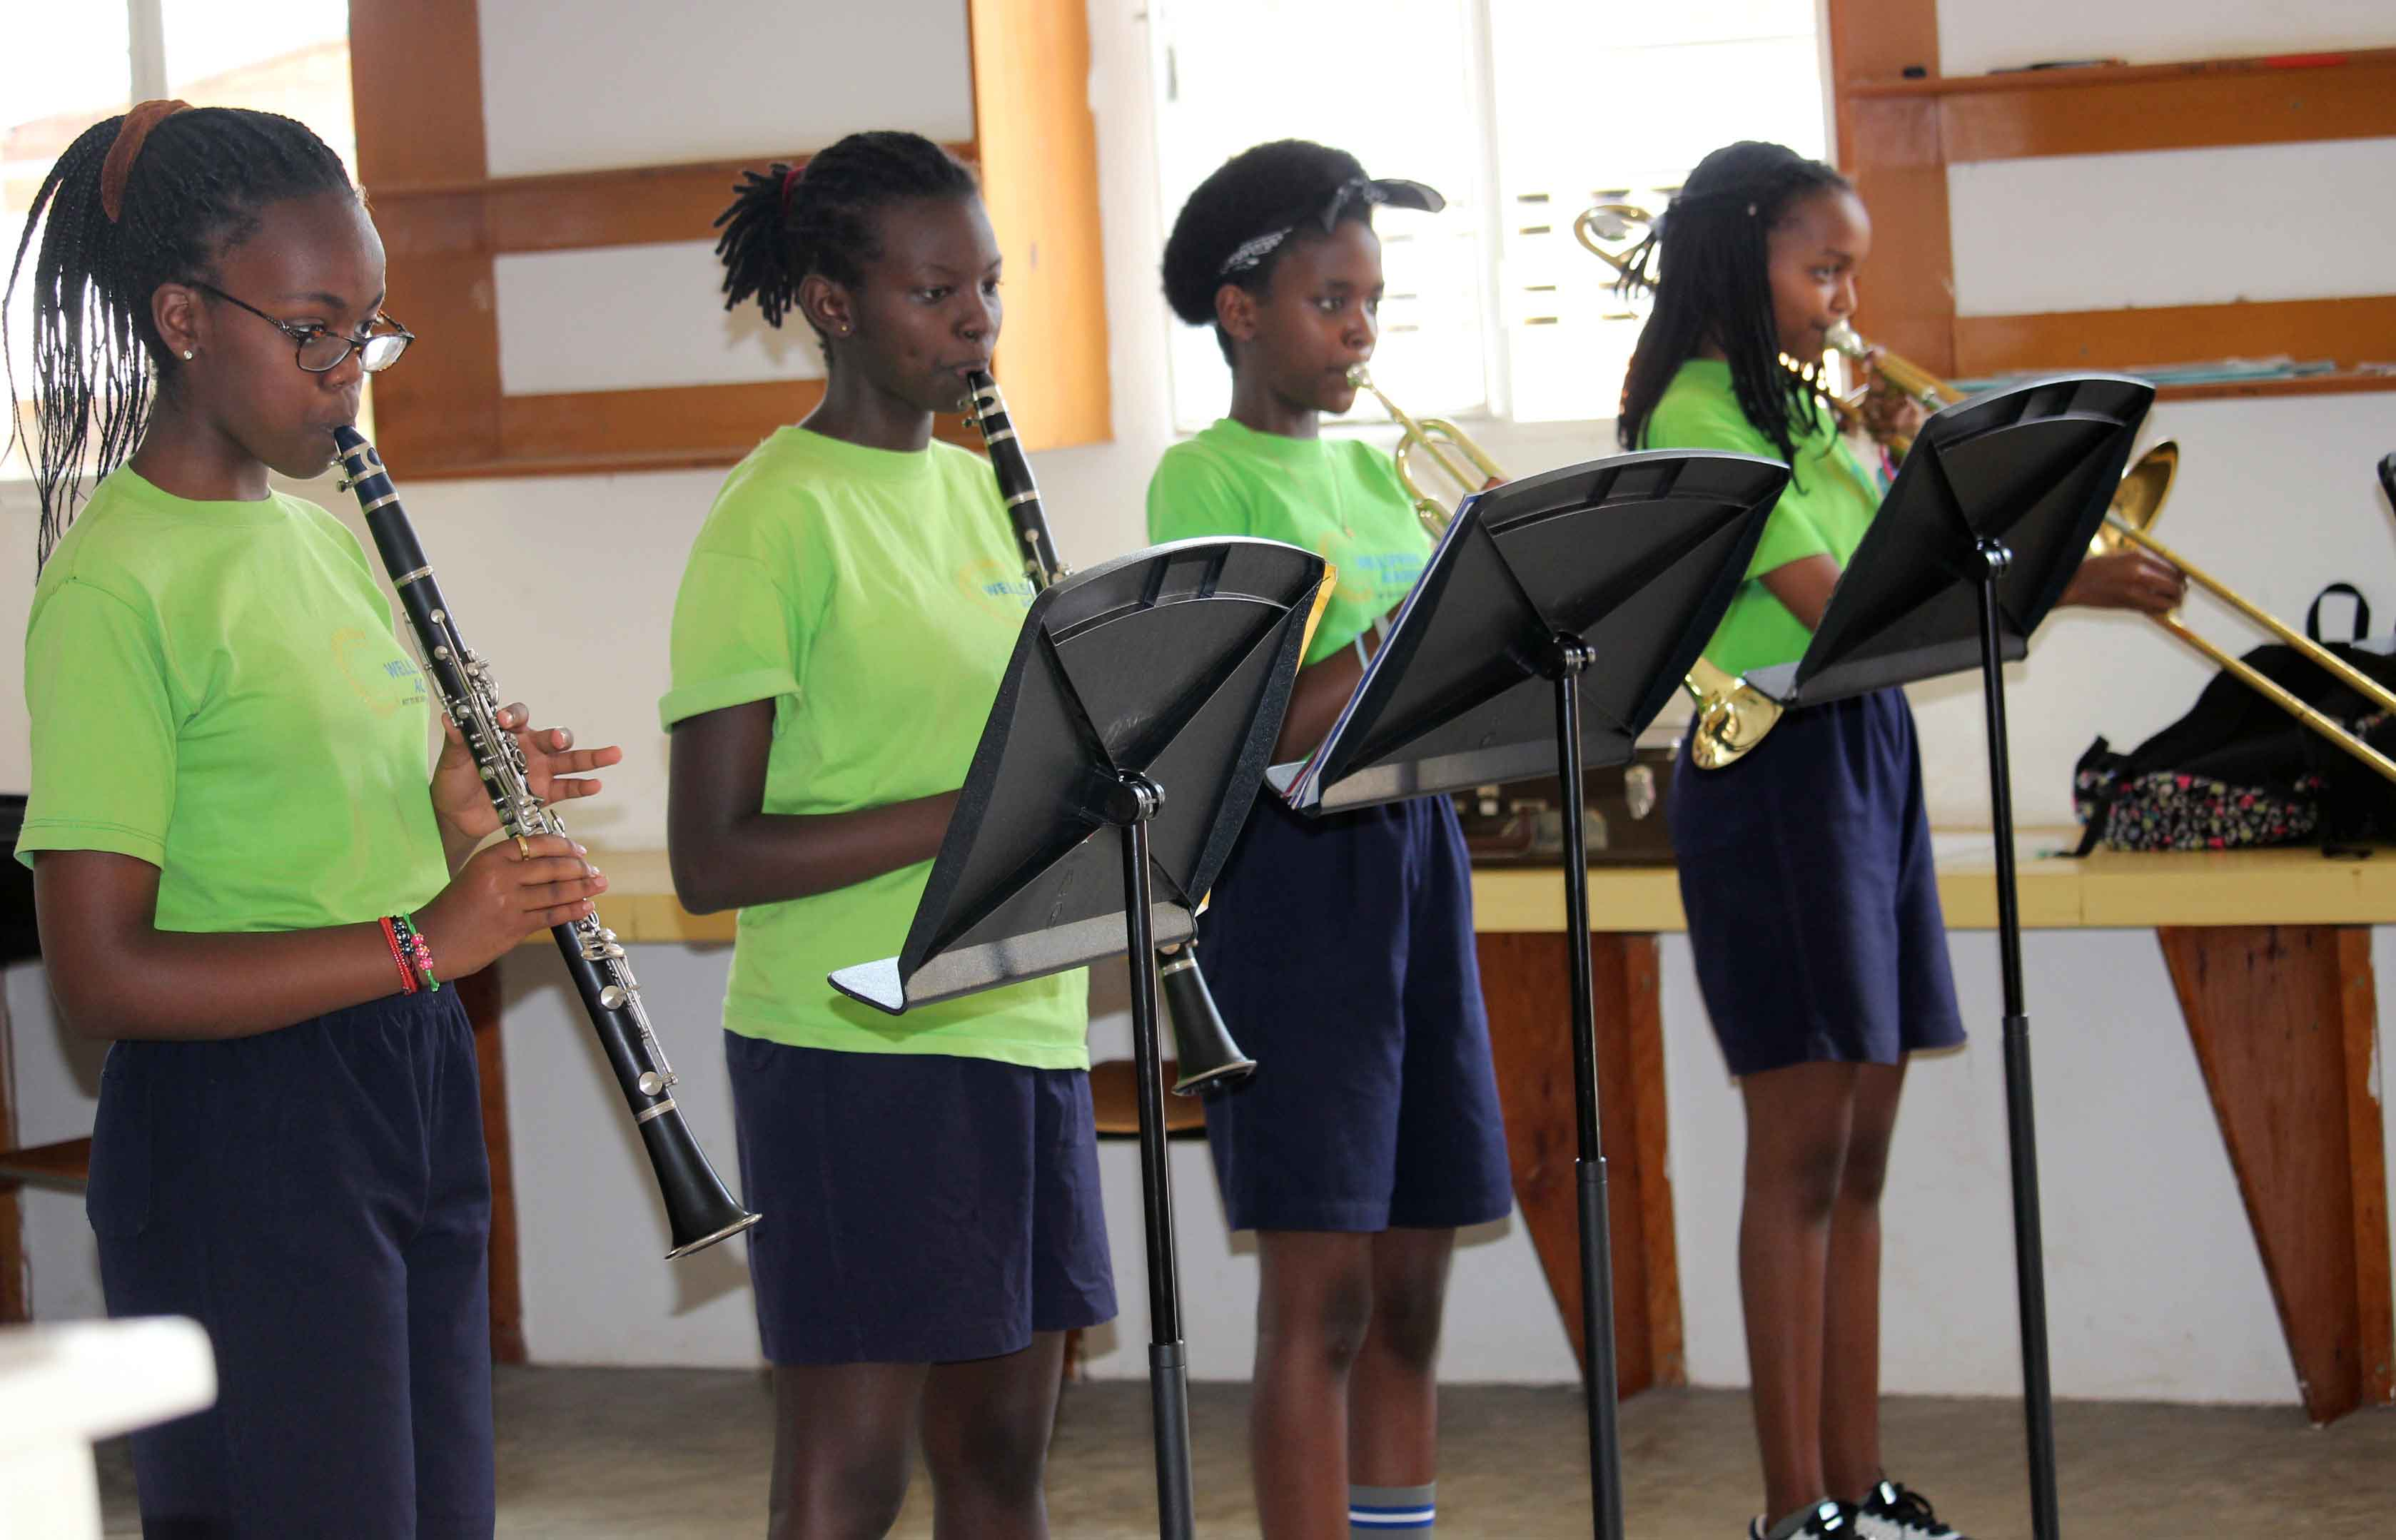 students playing band instruments